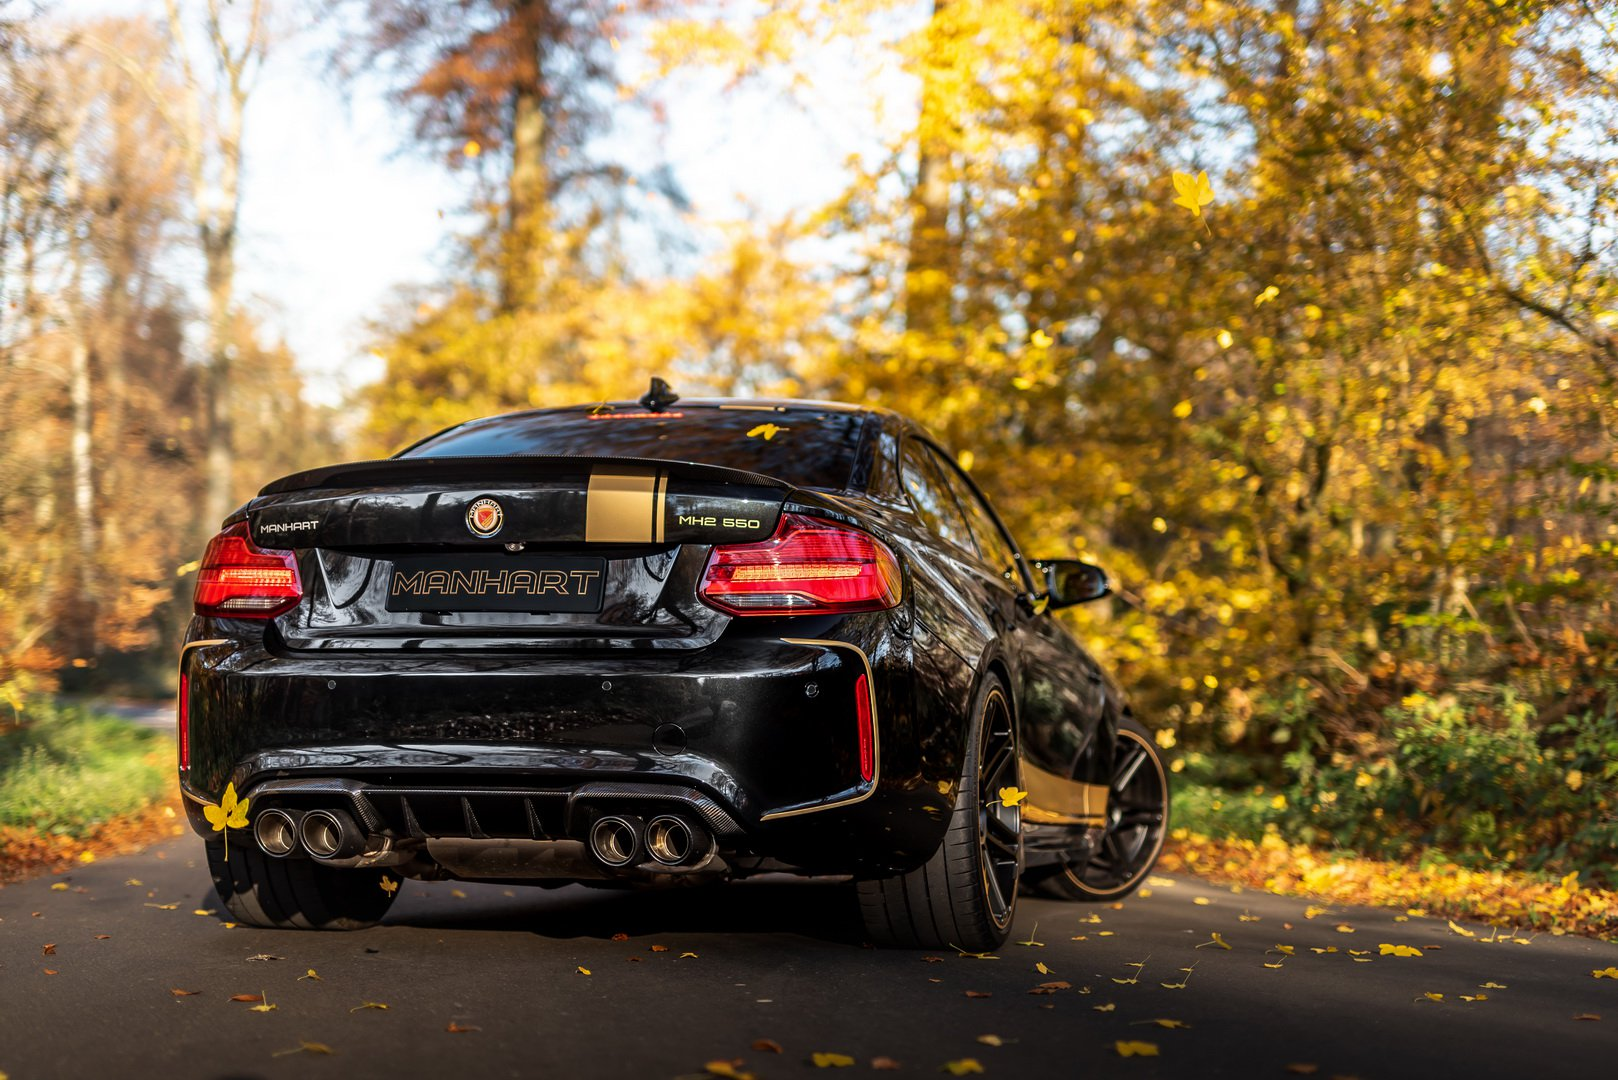 583d57a2-bmw-m2-competition-manhart-mh2-550-tuning-3.jpg